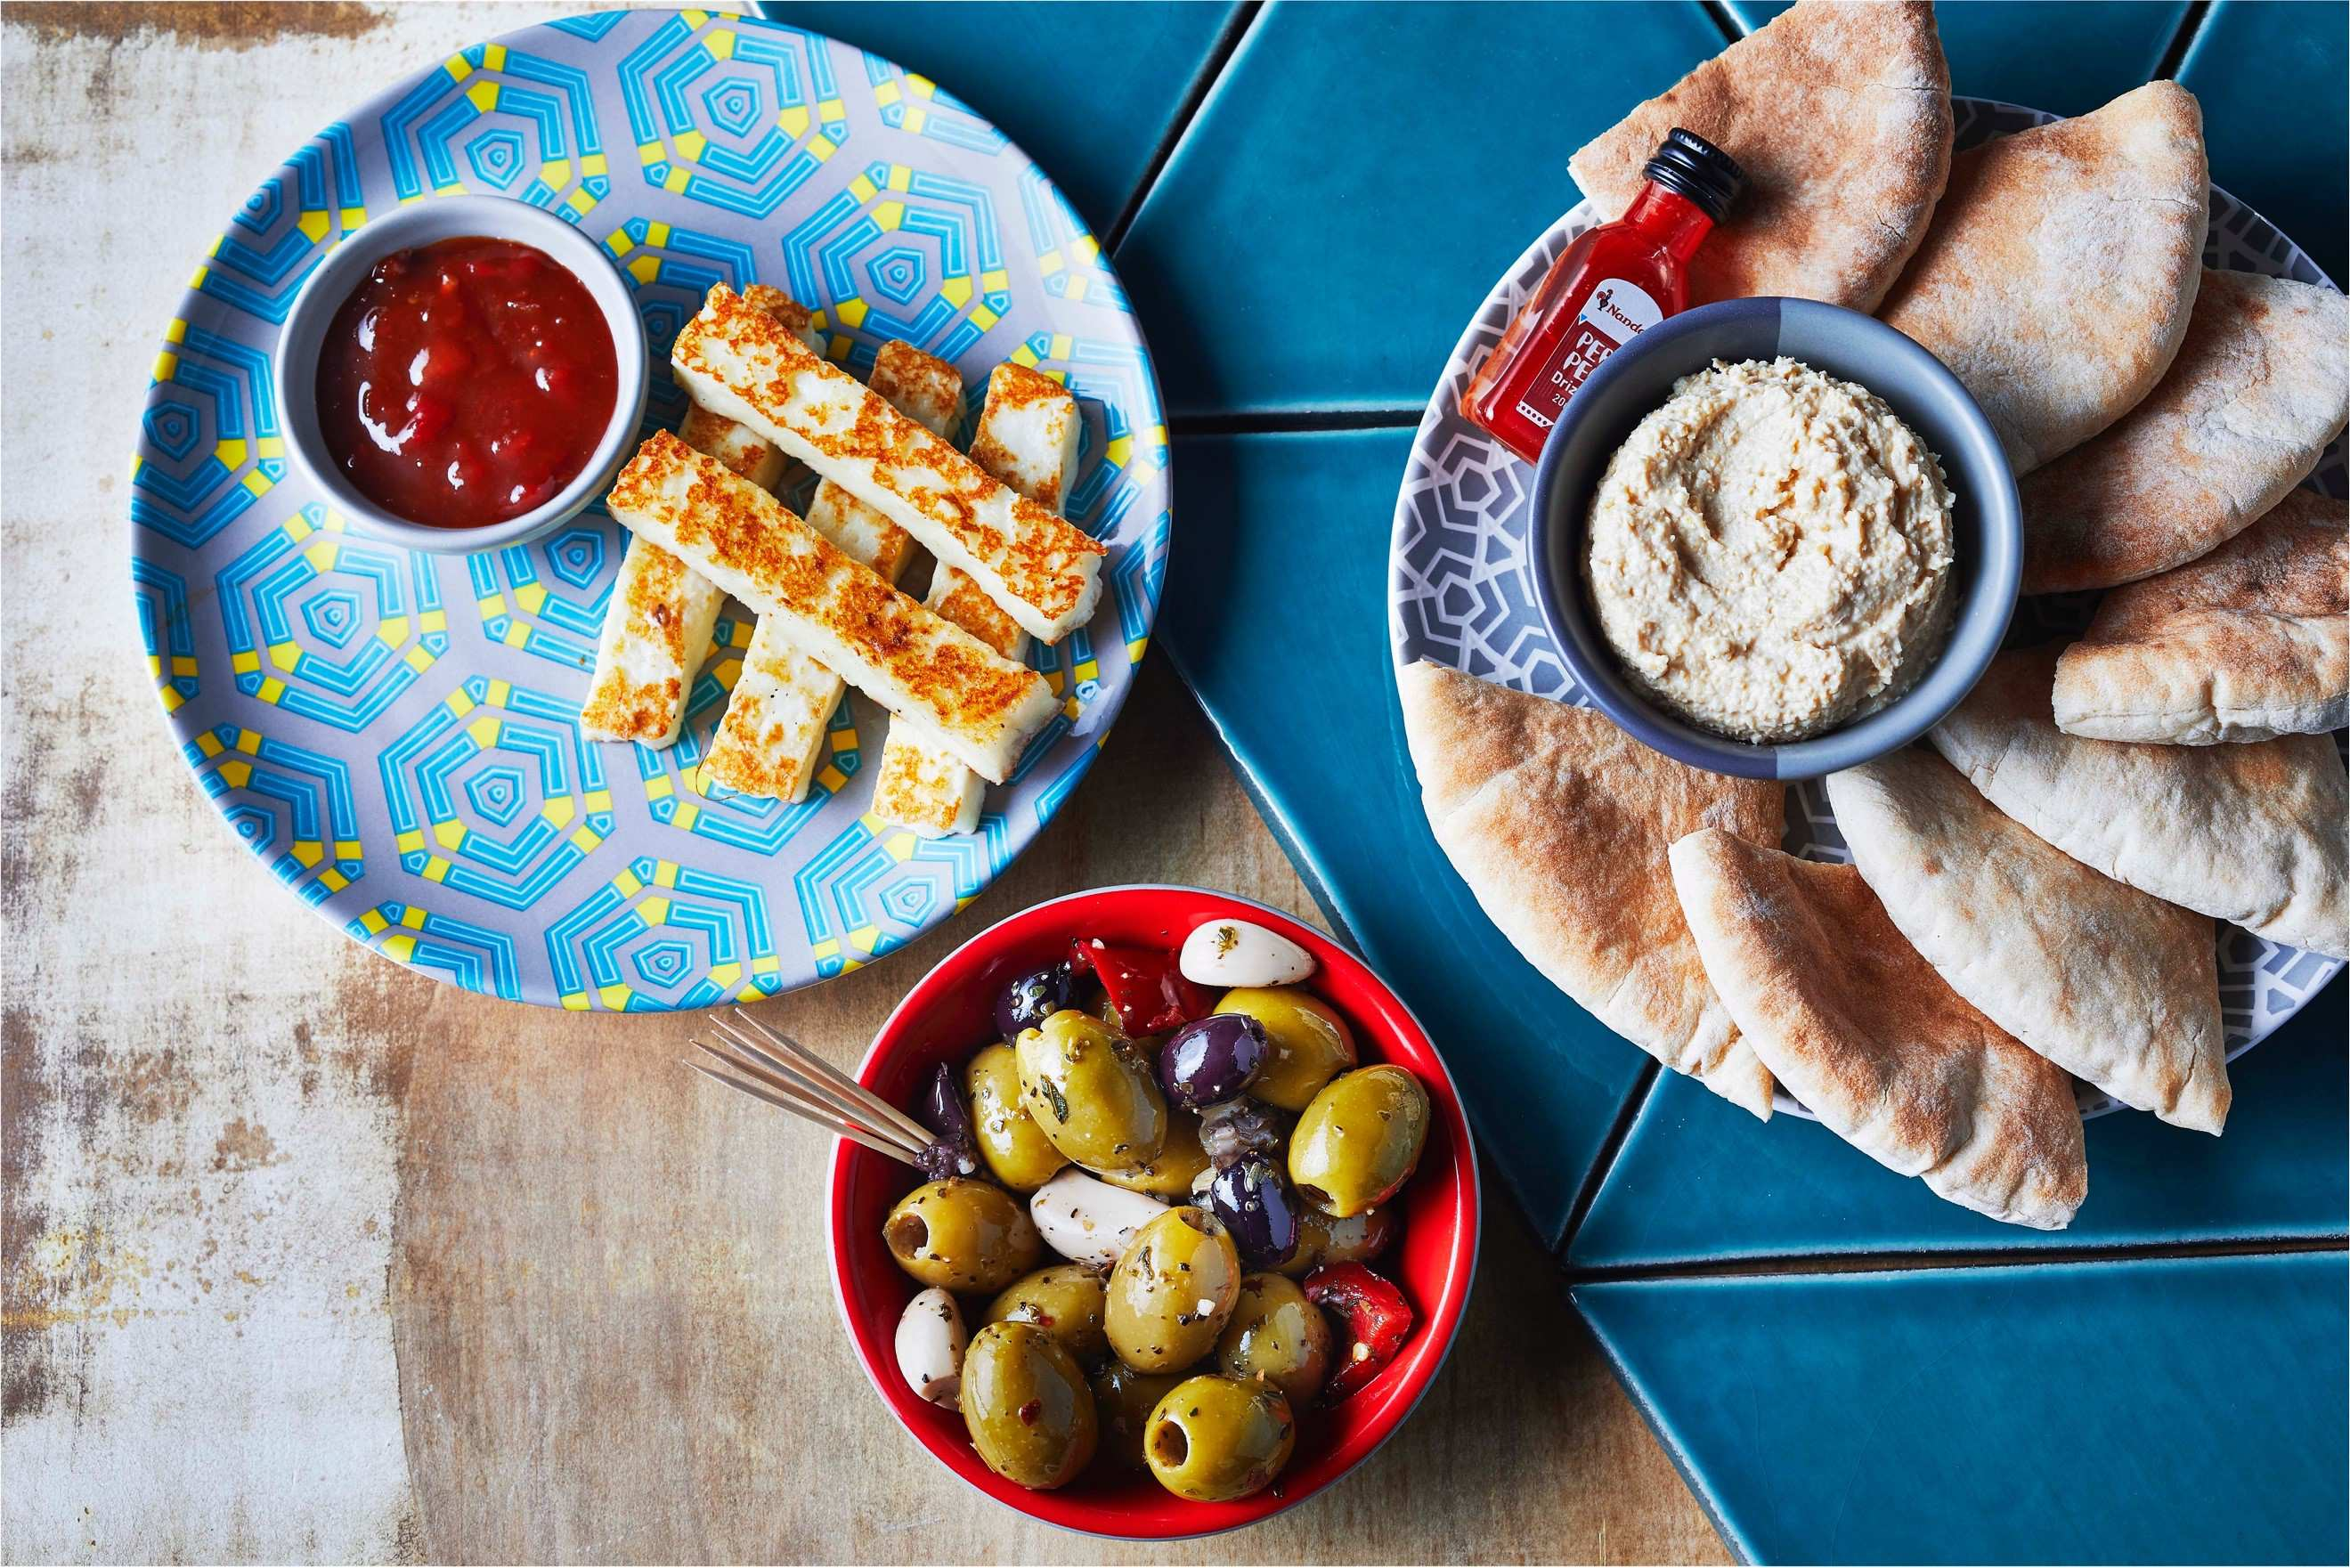 Nando's is offering FREE food to GCSE & A-Level students this August